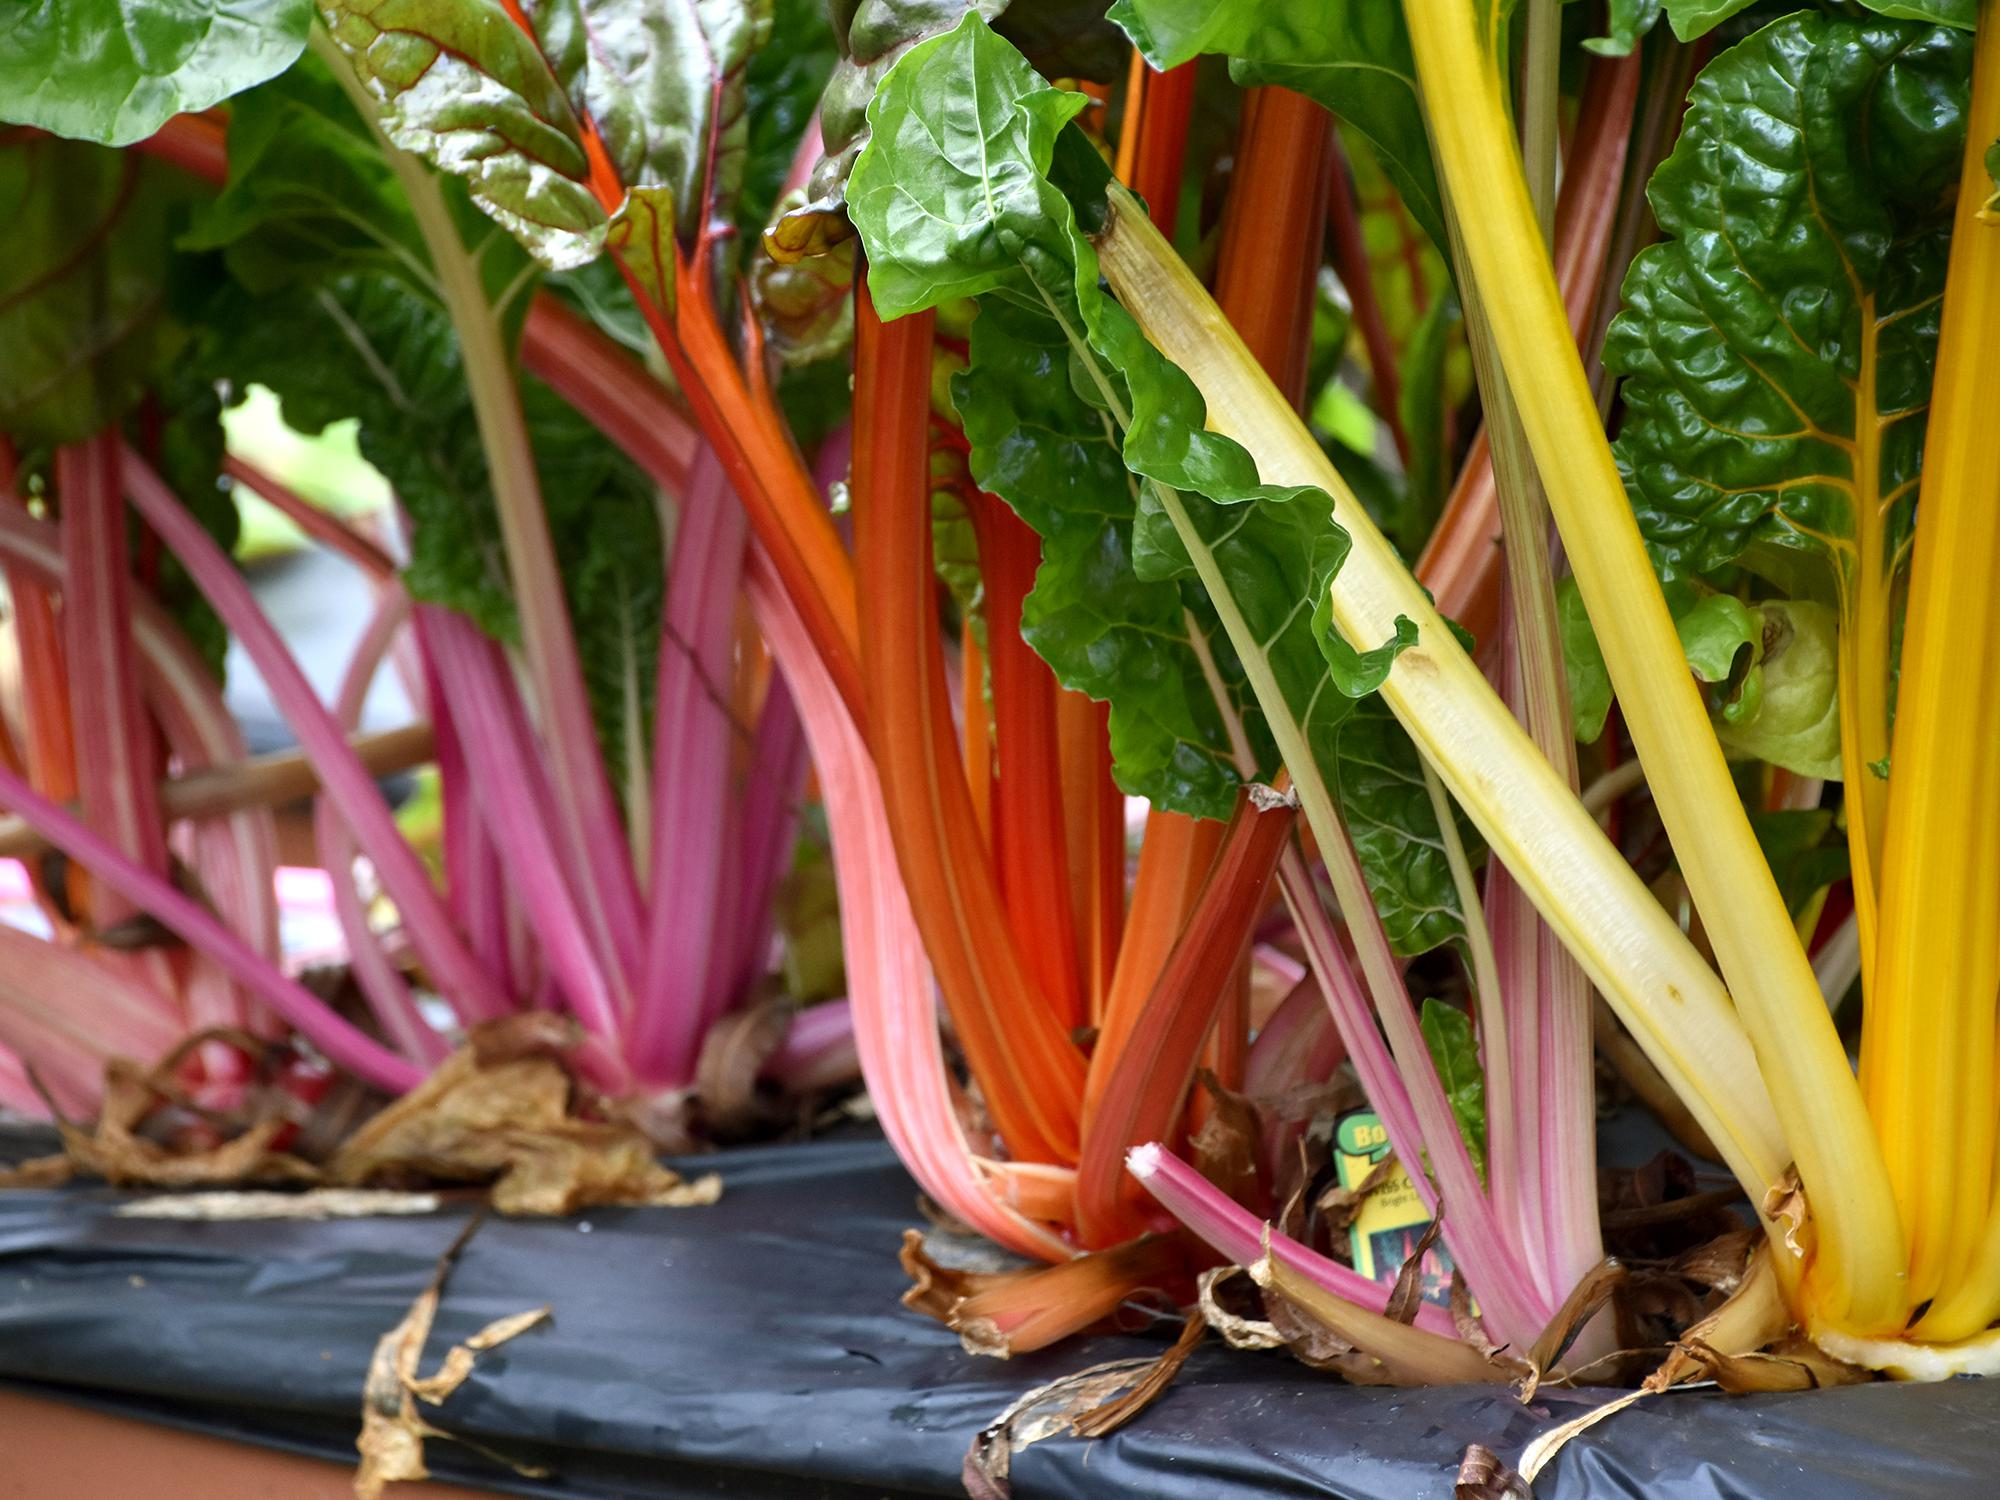 Bright Lights Swiss chard is a cool-season plant that does double duty as a beautiful landscape attraction that is edible and tasty. (Photo by MSU Extension/Gary Bachman)